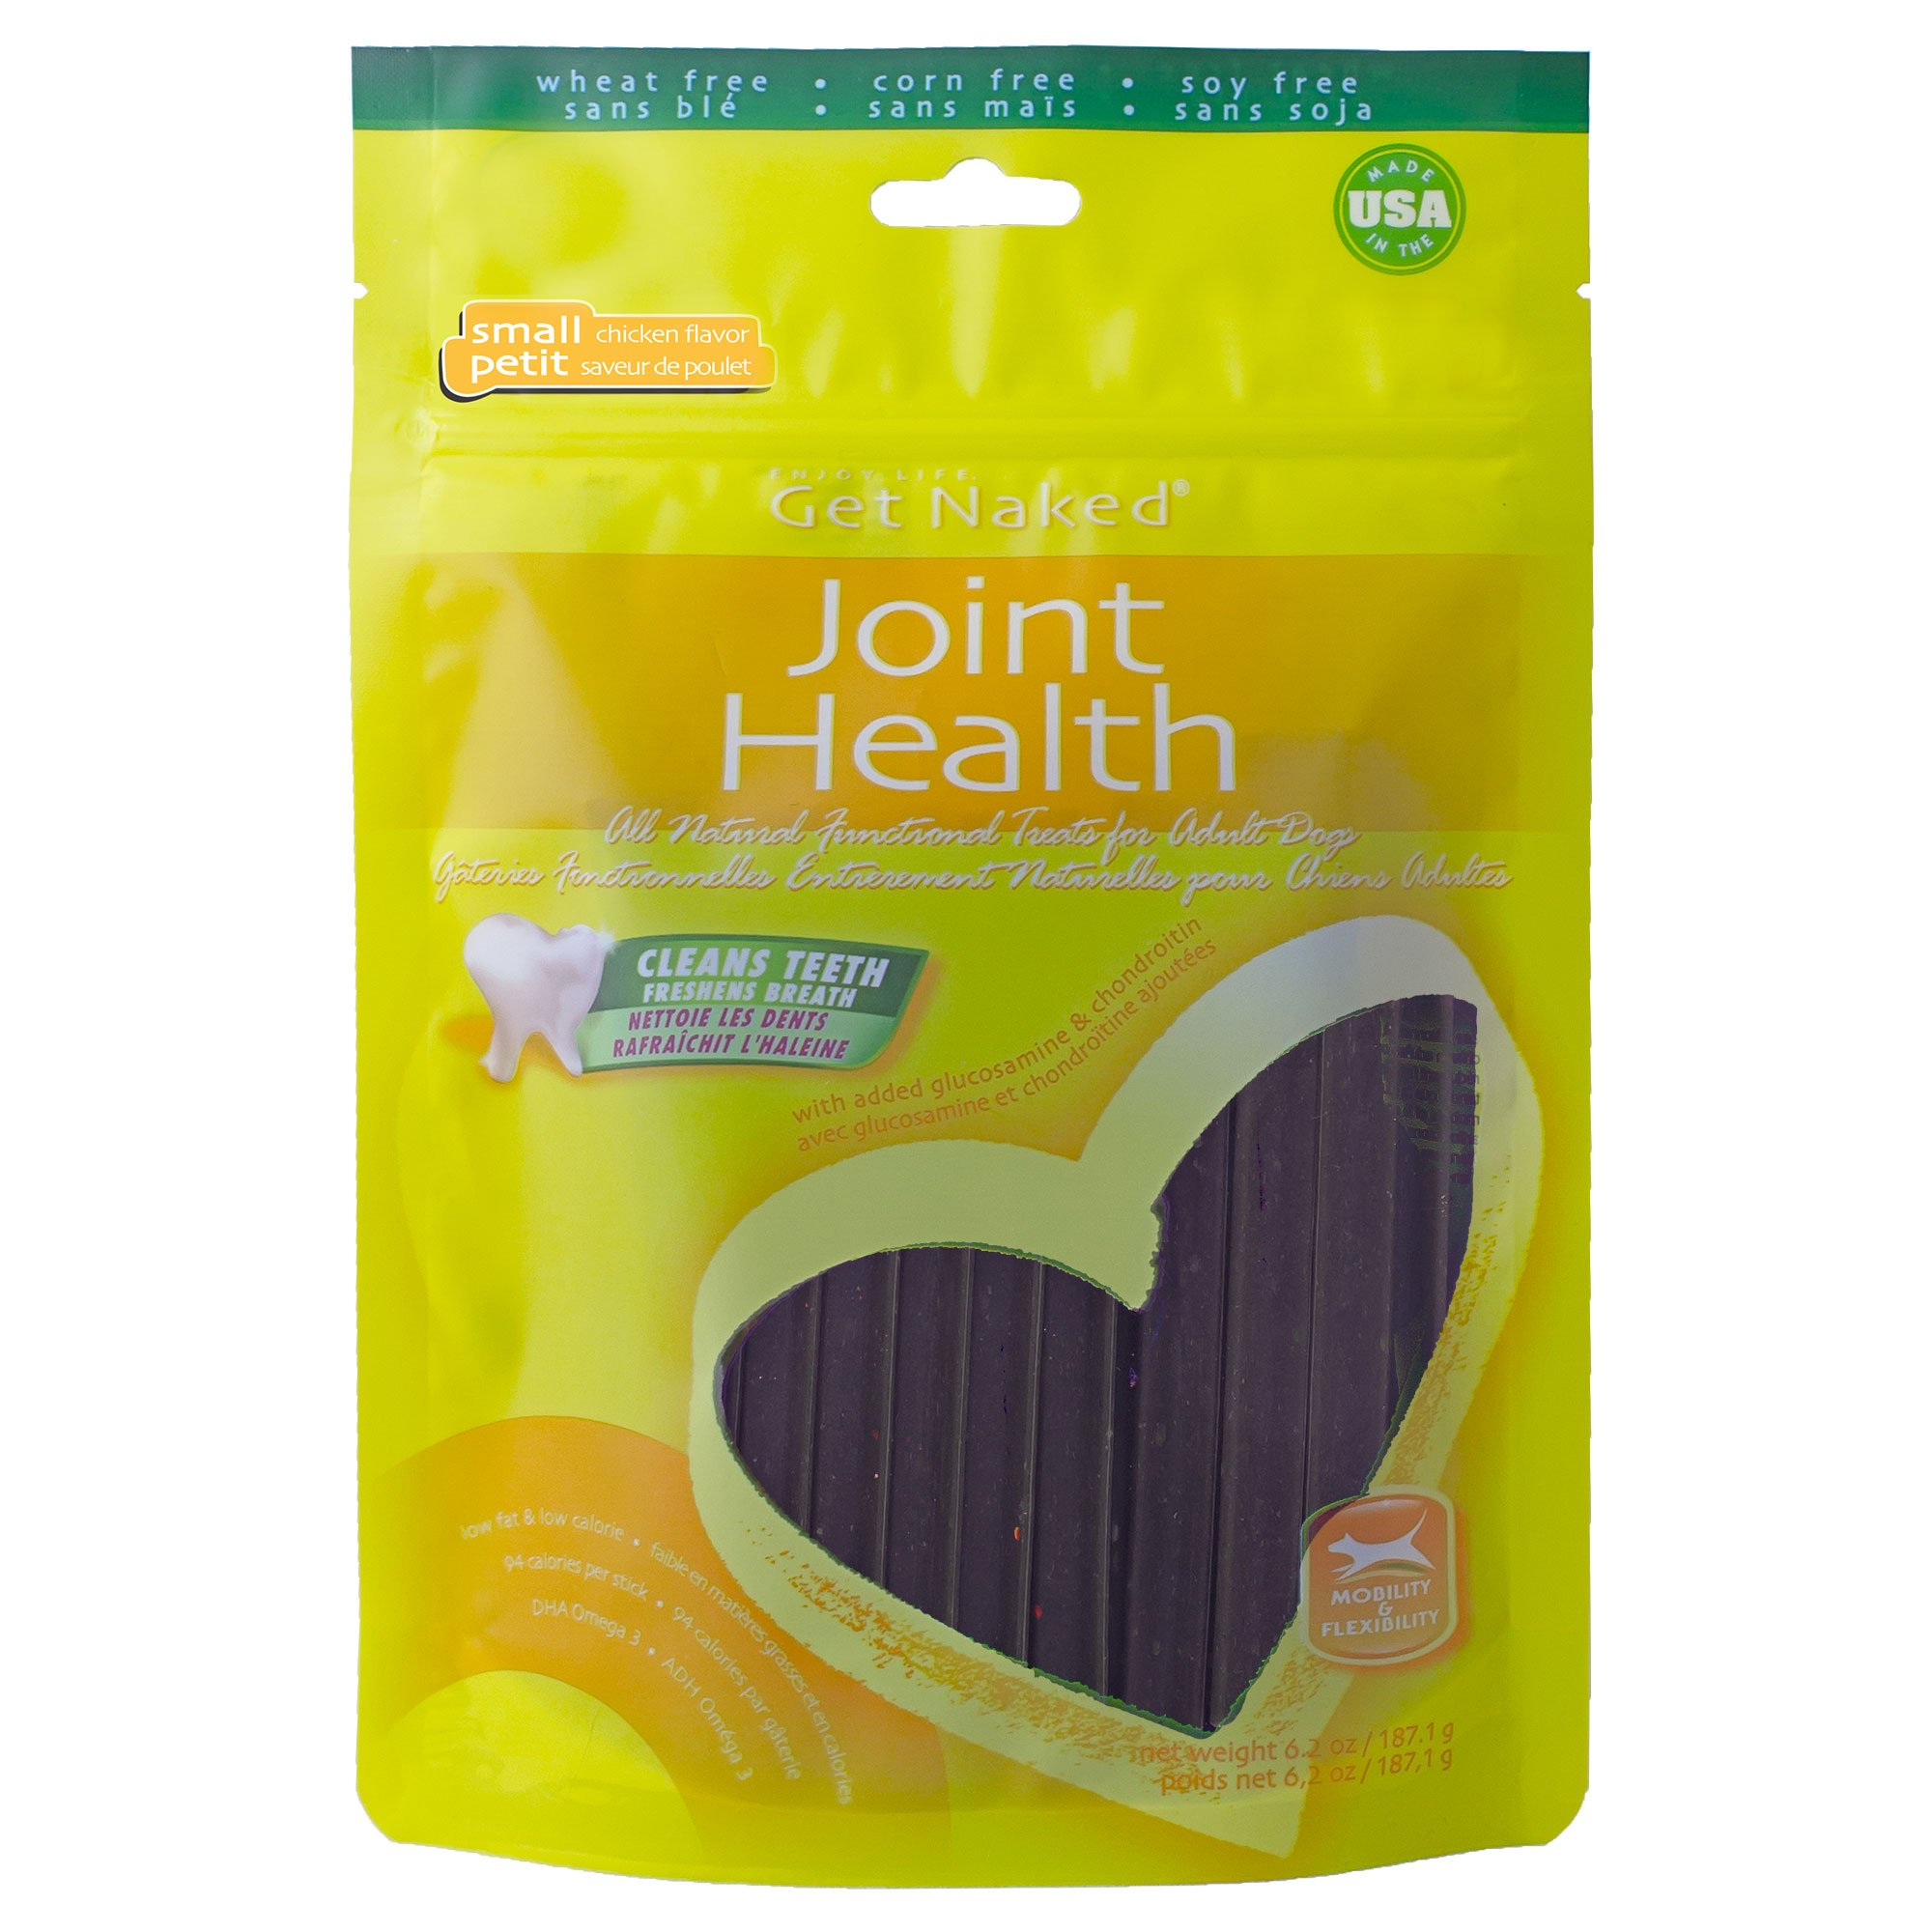 Get Naked Joint Health Dog Treats